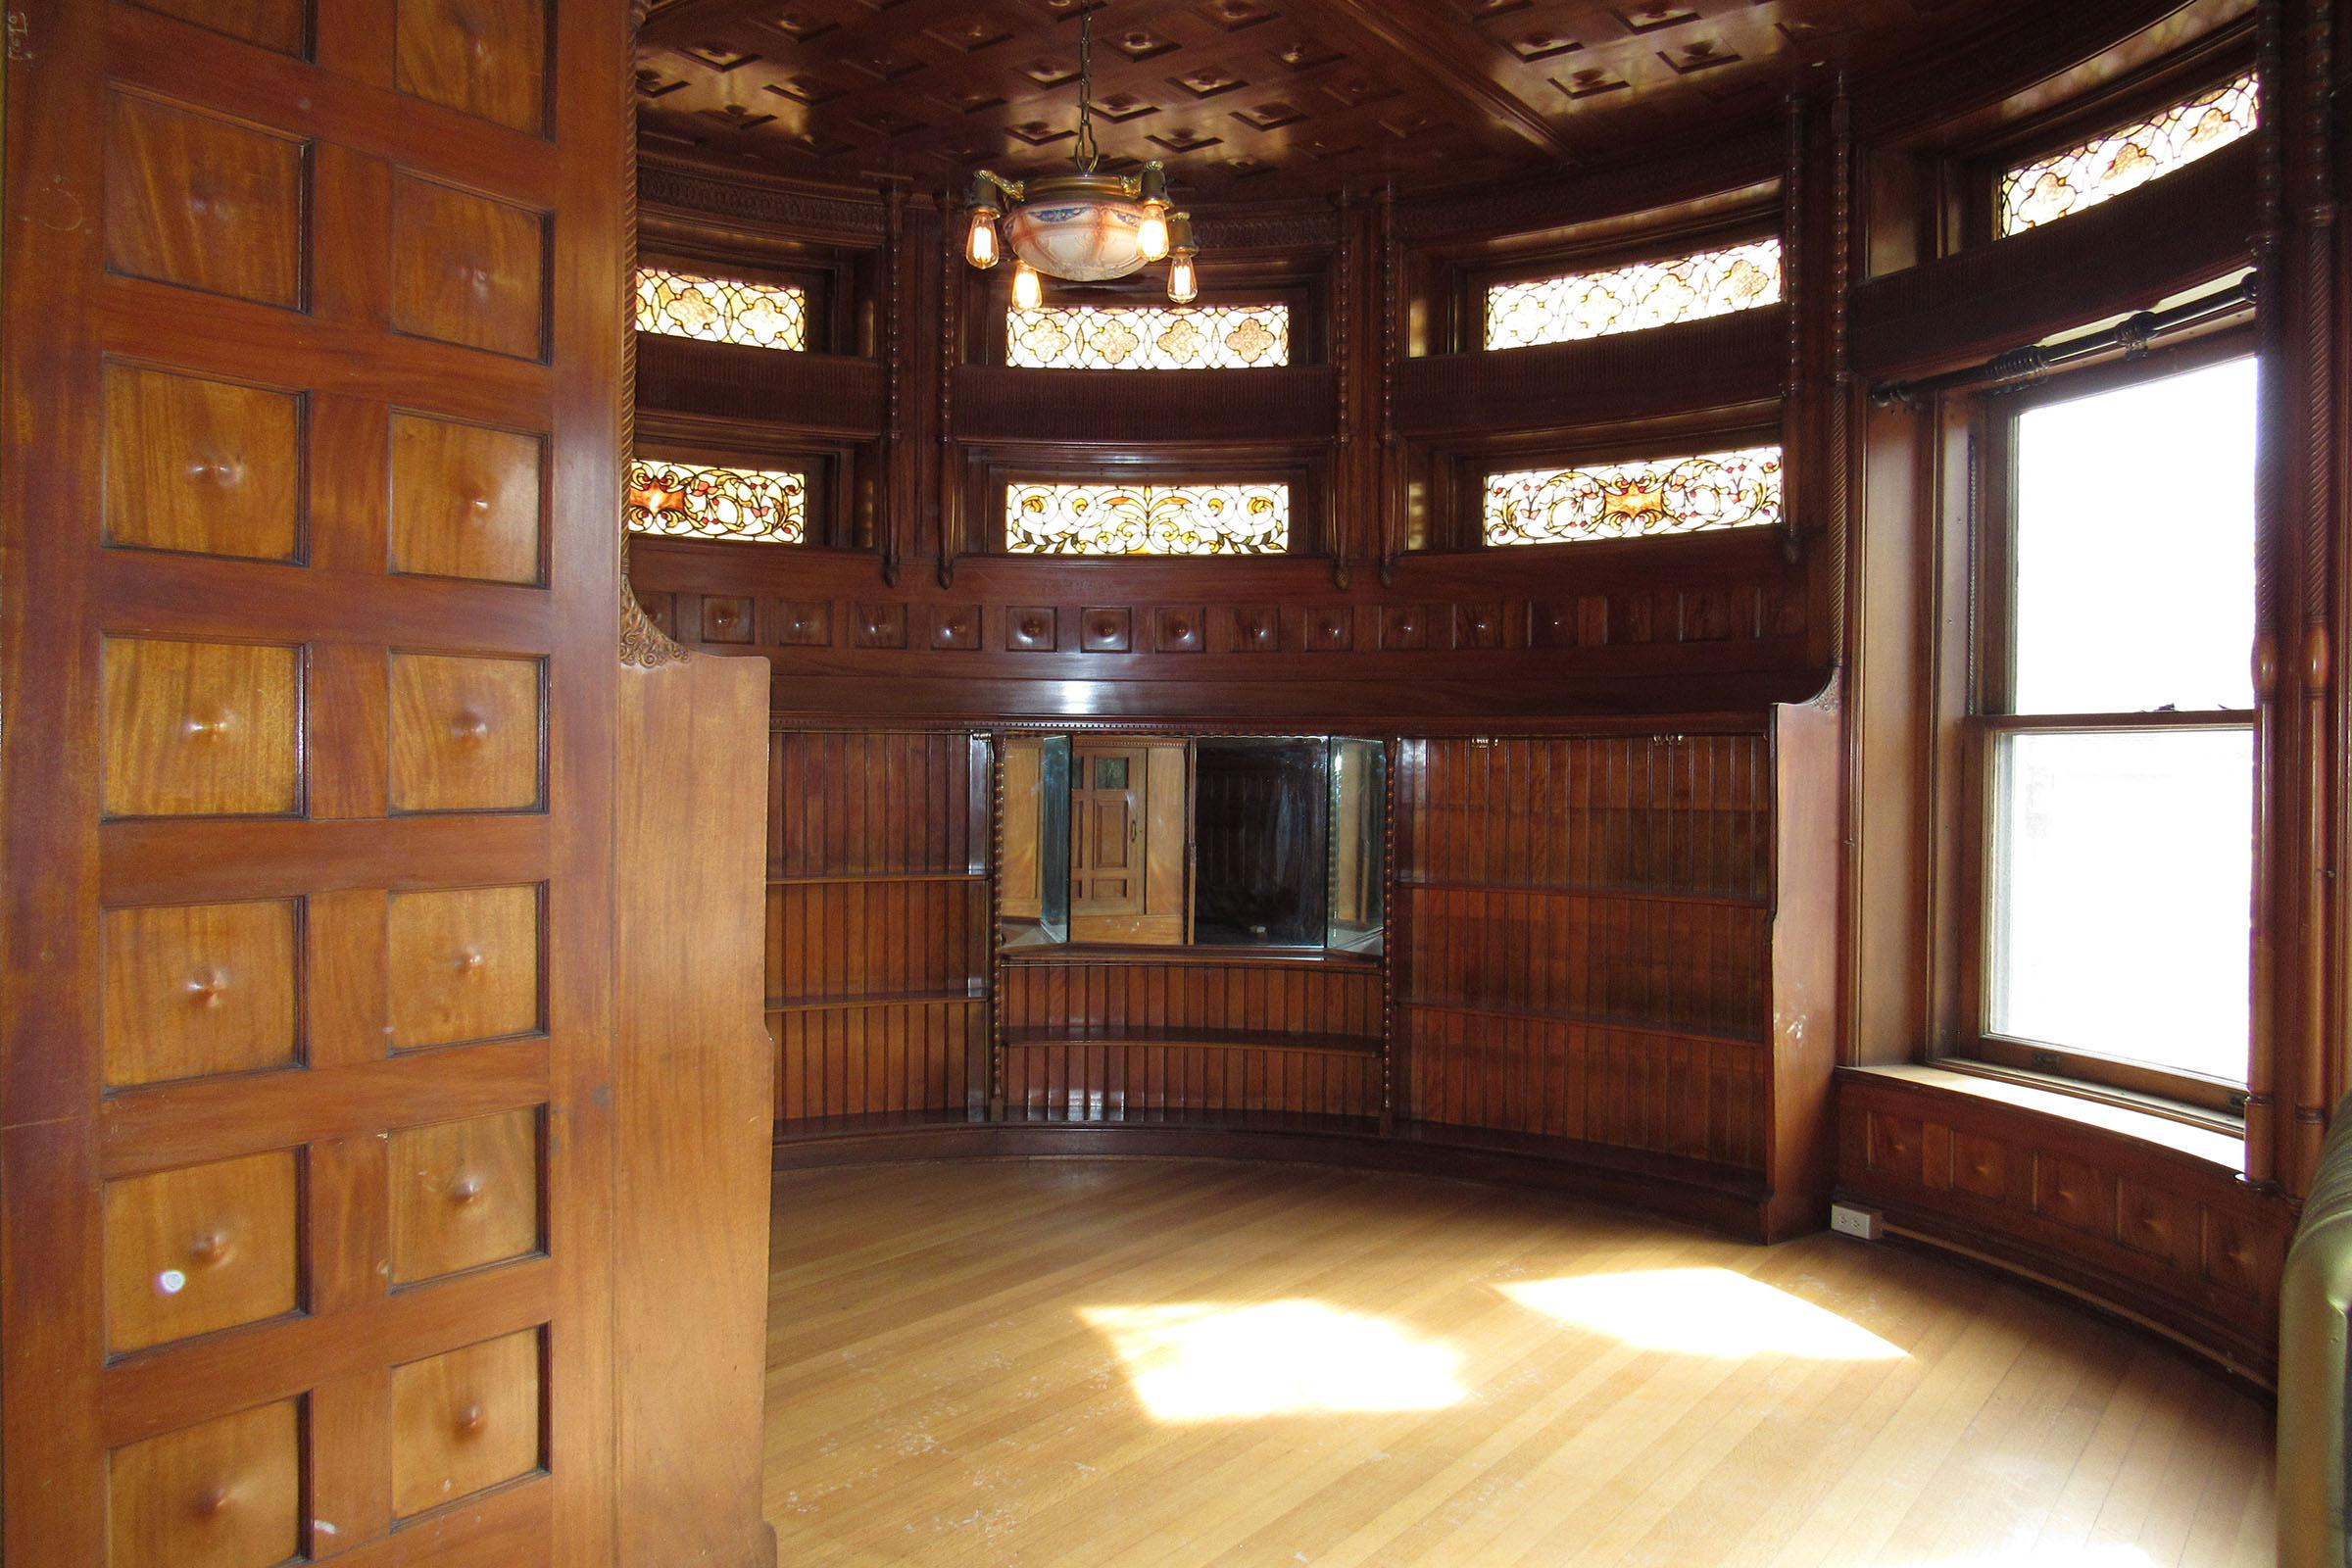 a large wooden cabinet next to a window